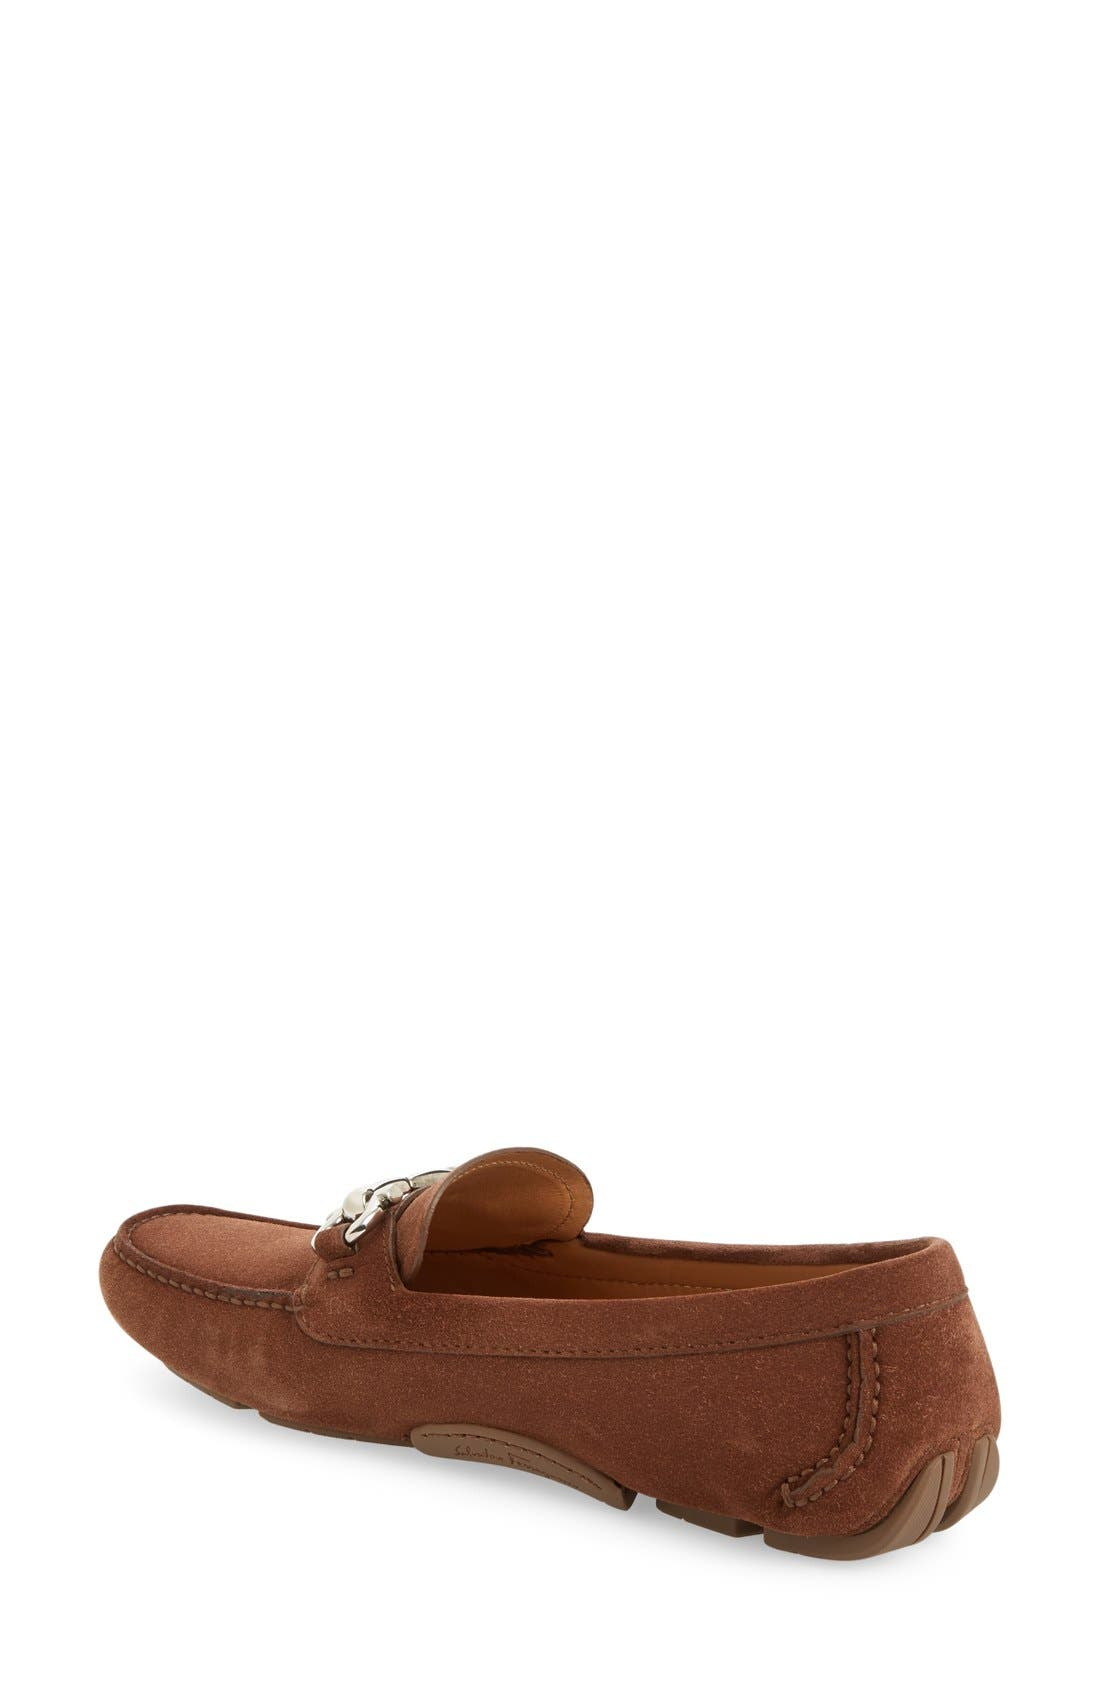 Parigi Loafer,                             Alternate thumbnail 5, color,